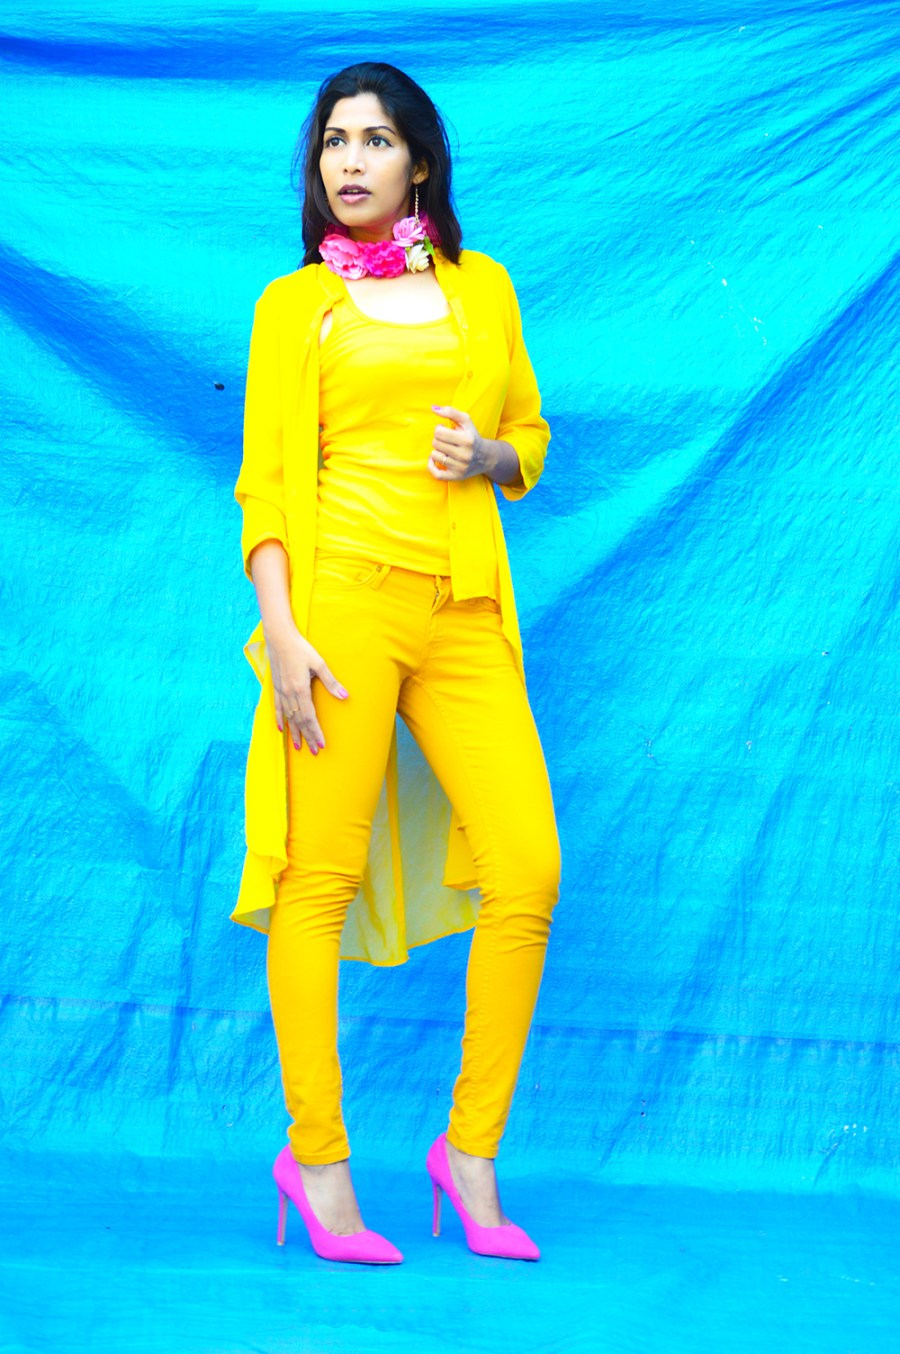 Fashion, Style, Street Style, Fashion Photography, Summer Fashion, Indian Fashion Blogger, Fashion Blogger, Yellow Shrug, Yellow Outfit, Summer Colours, Style Over Coffee, Beauty-3